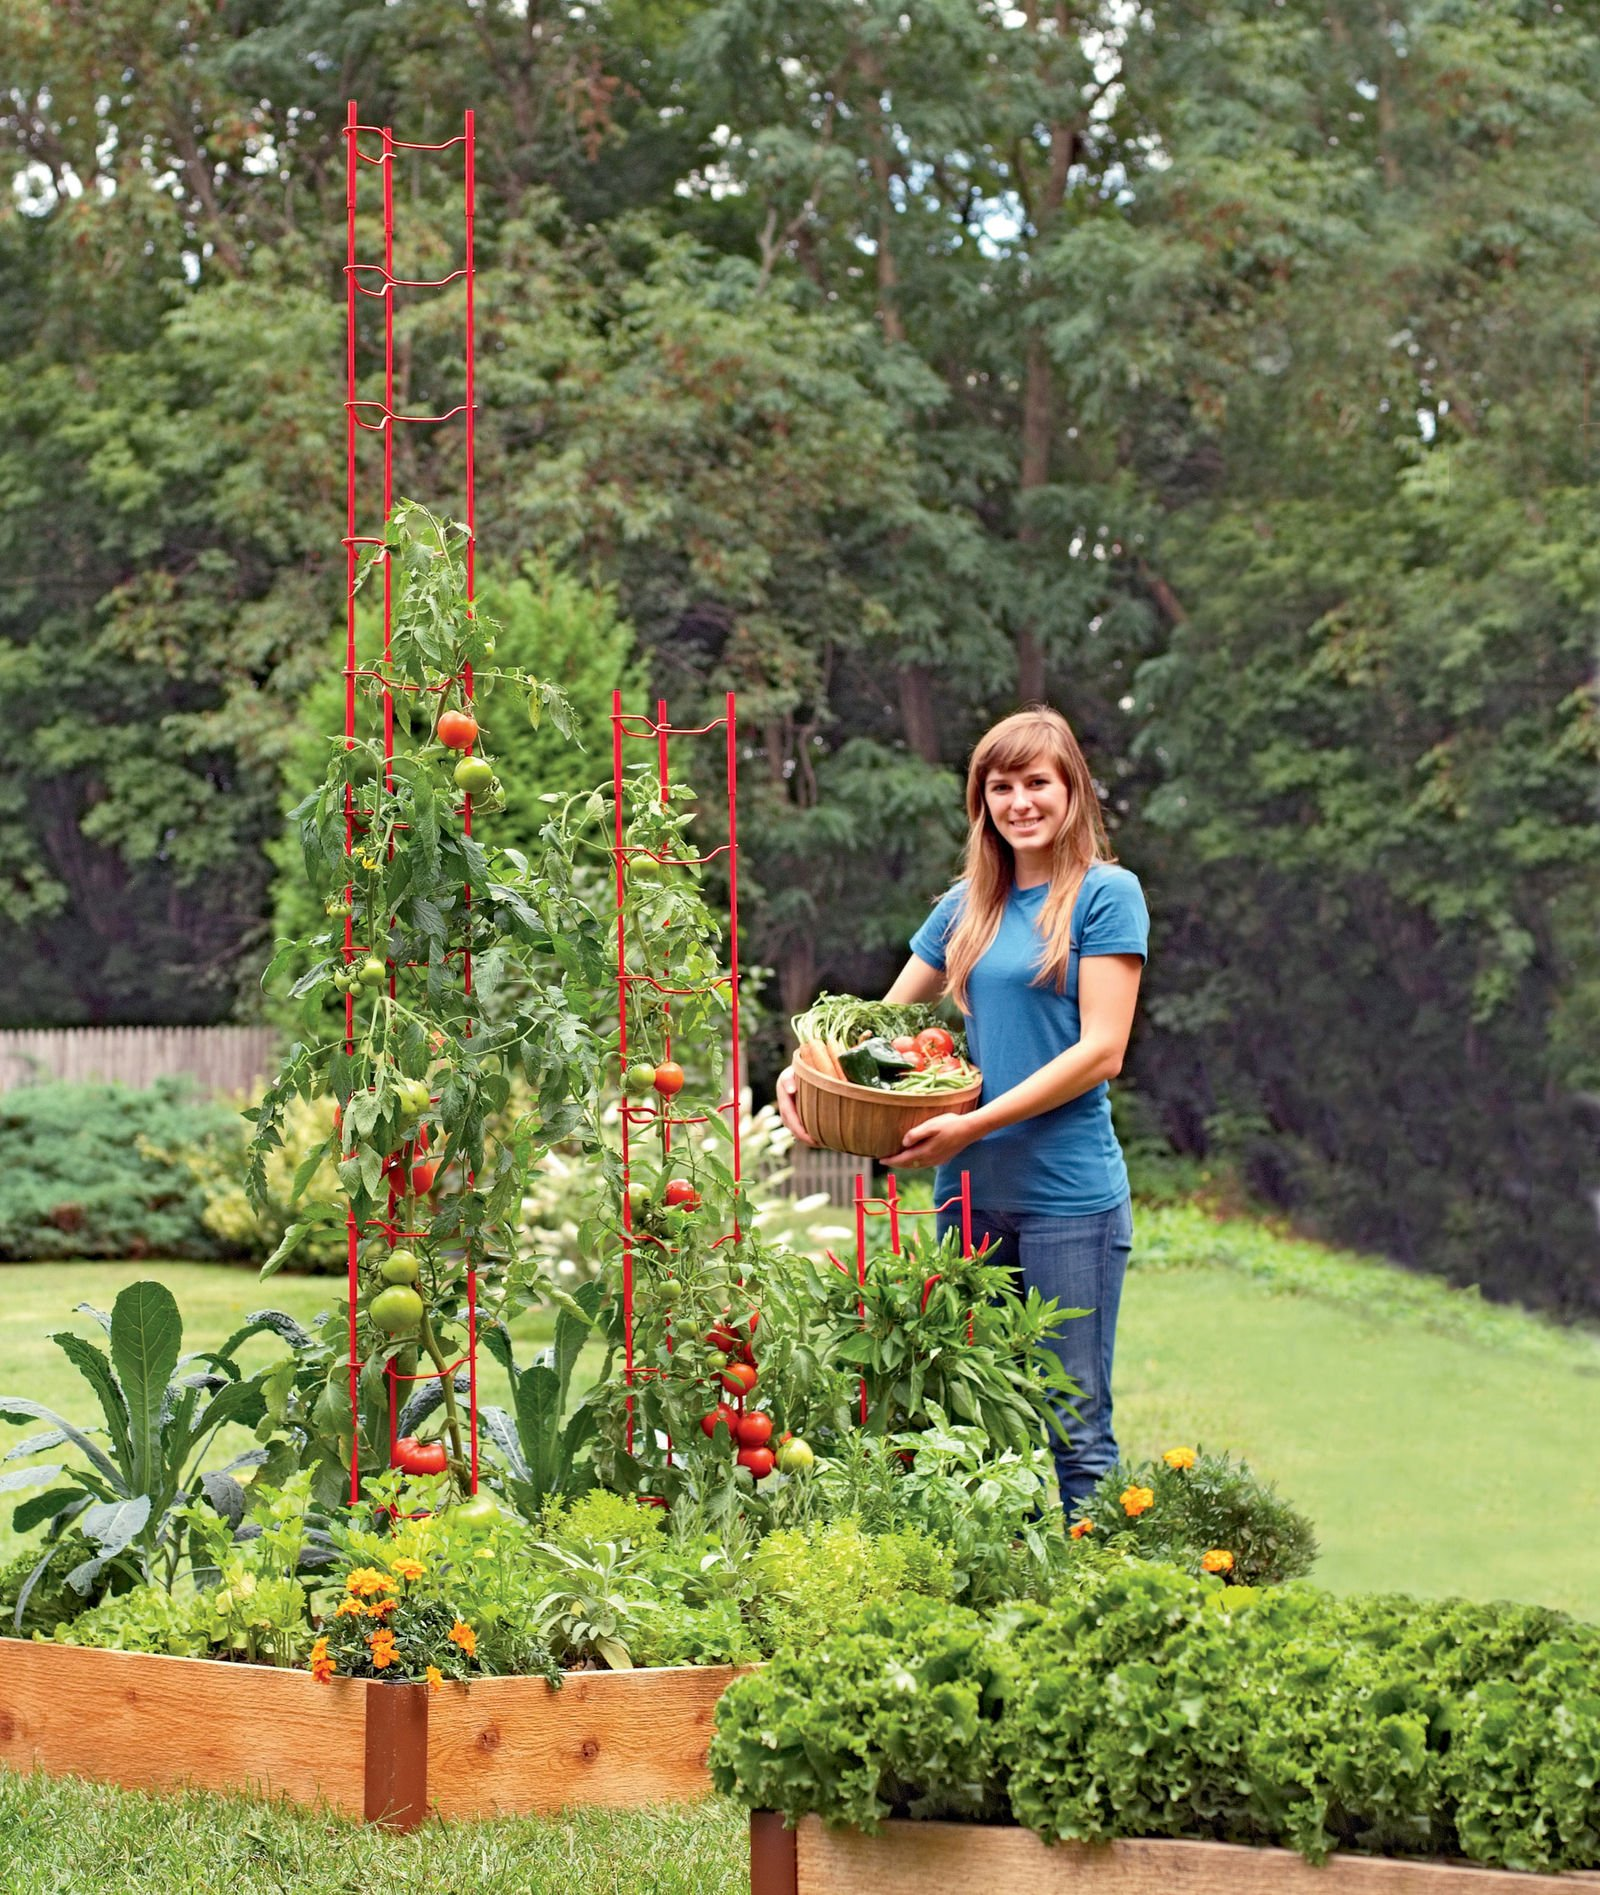 Stacking Tomato Ladders, Tomato Supports for The Garden Set of 6, Heavy Gauge Steel 22''-78'' Tall